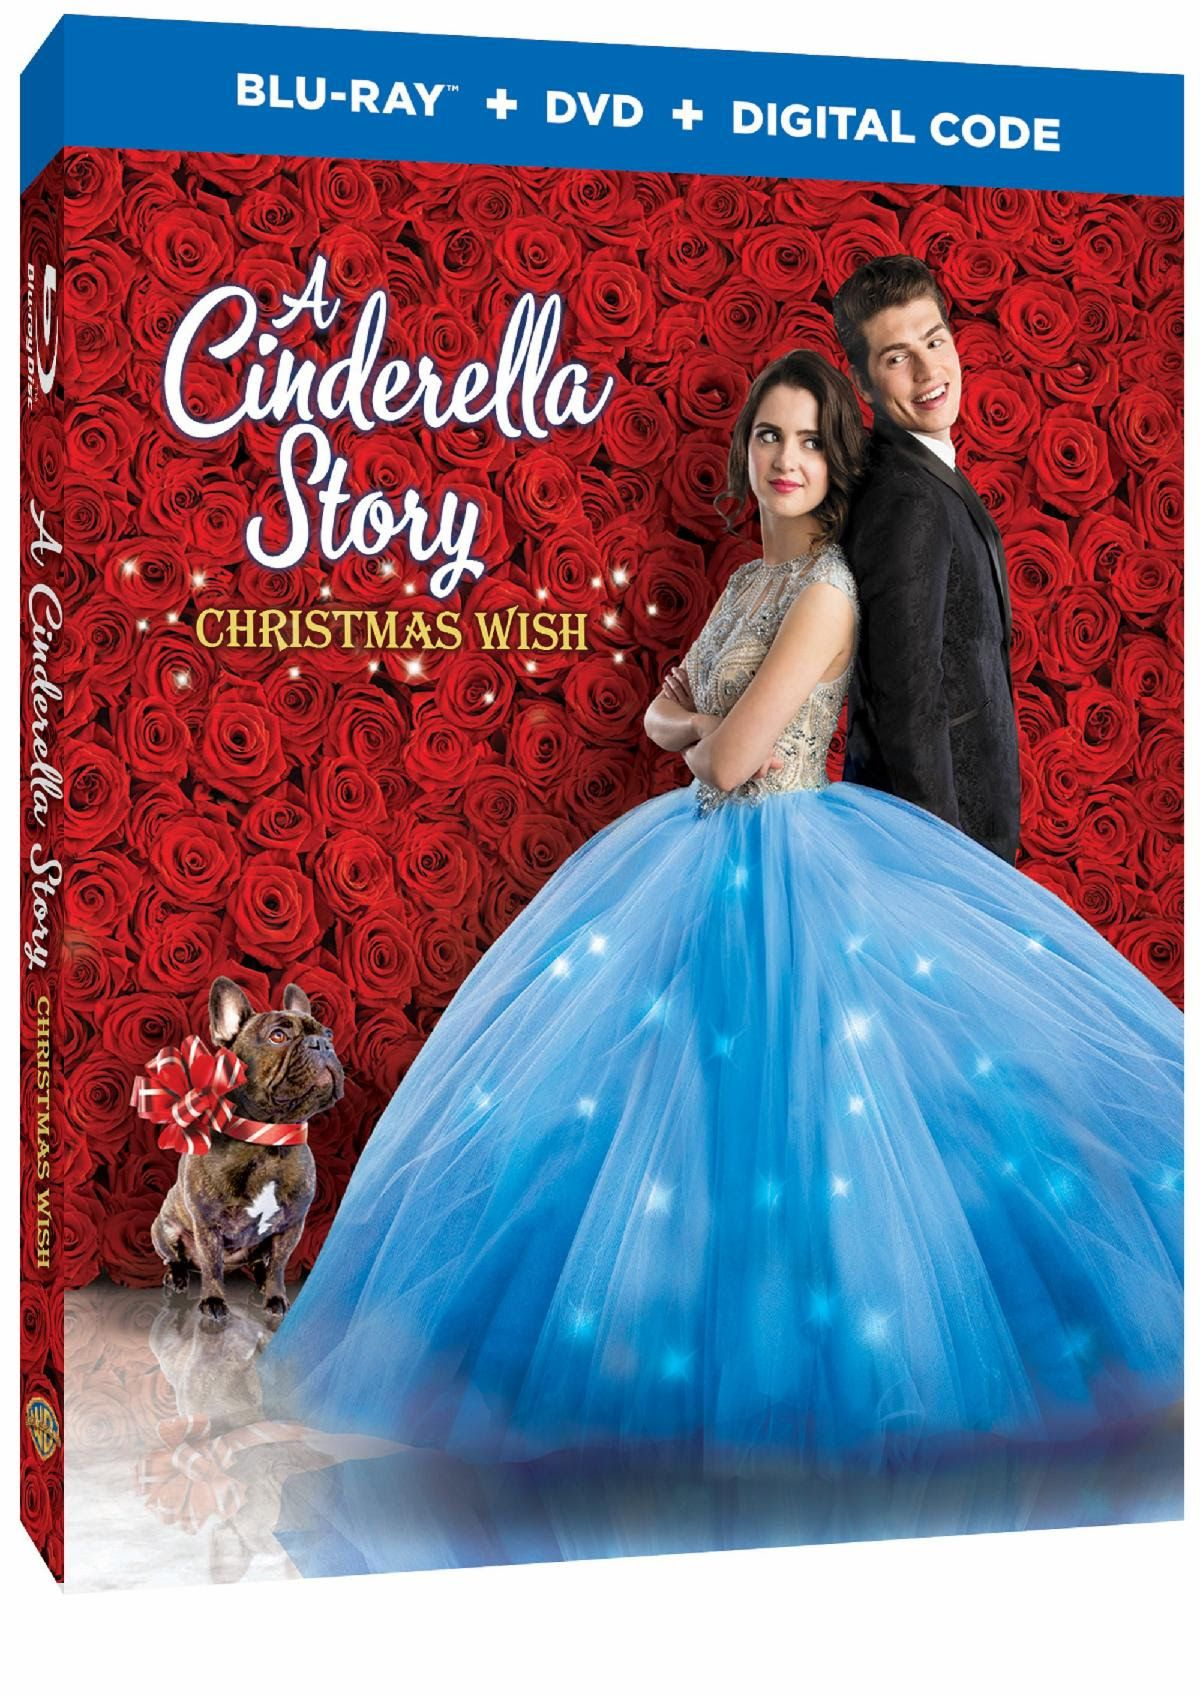 A Cinderella Story Christmas Wish Now Available On Blu Ray Dvd A Cinderella Story Cinderella Cinderella Story Movies